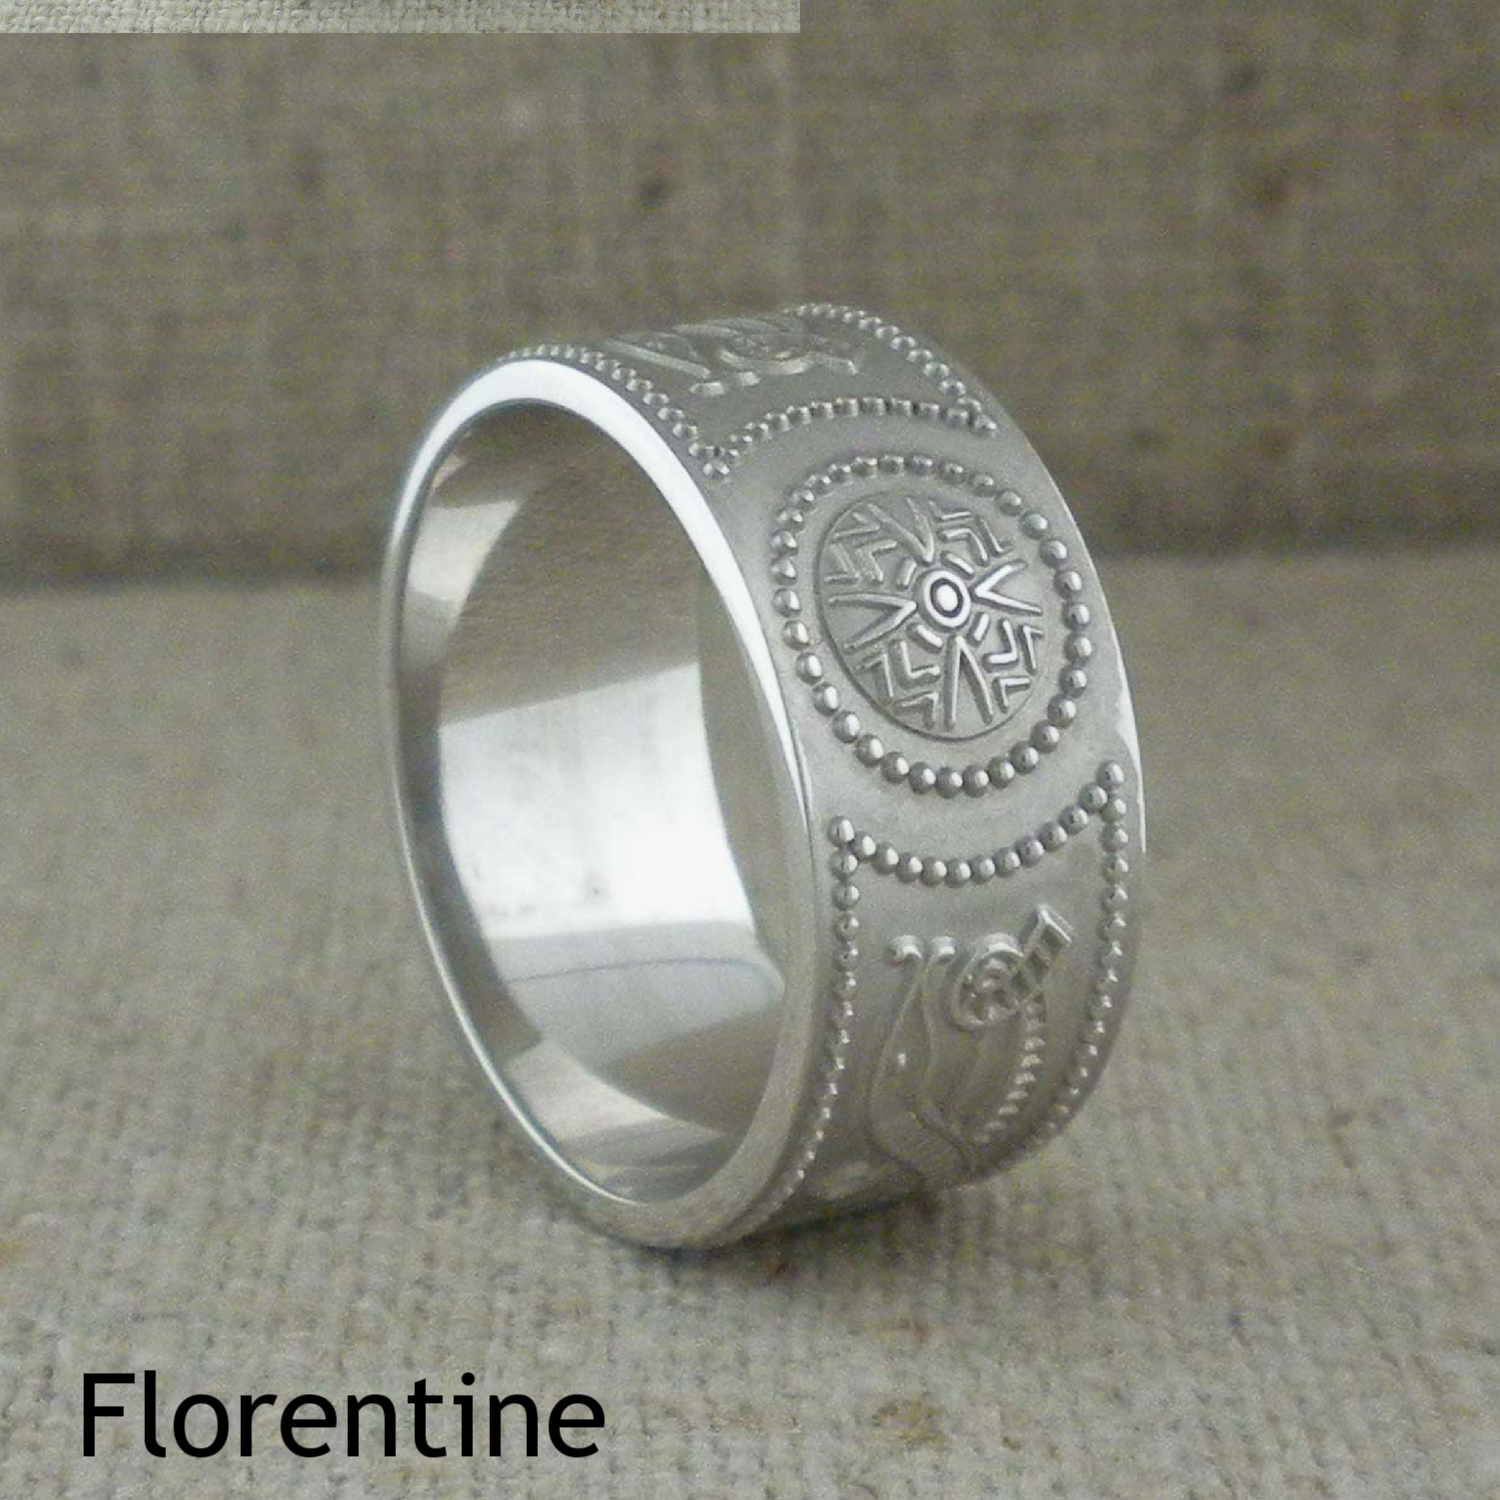 Florentine Finish on Sterling Silver